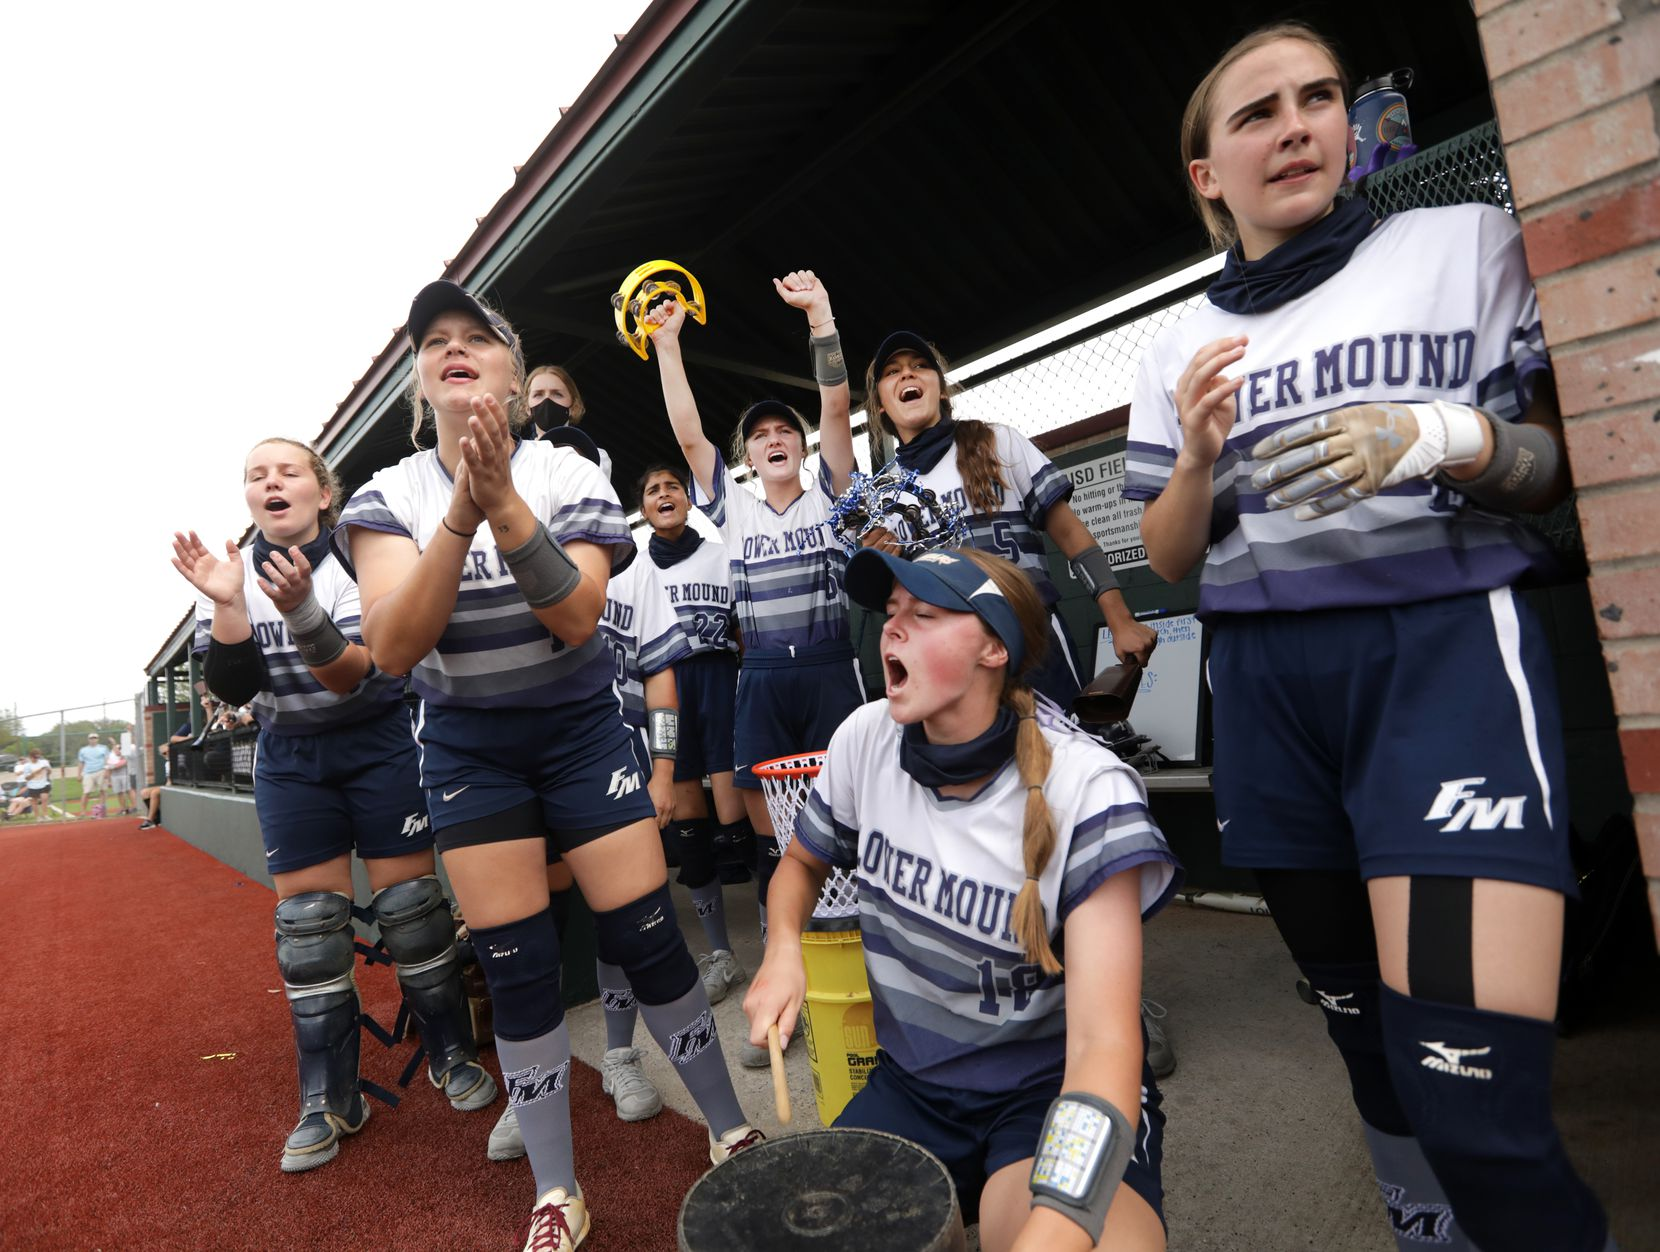 Flower Mound High School players cheer during a softball playoff game against Allen High School at Allen High School in Allen, TX, on May 15, 2021. (Jason Janik/Special Contributor)